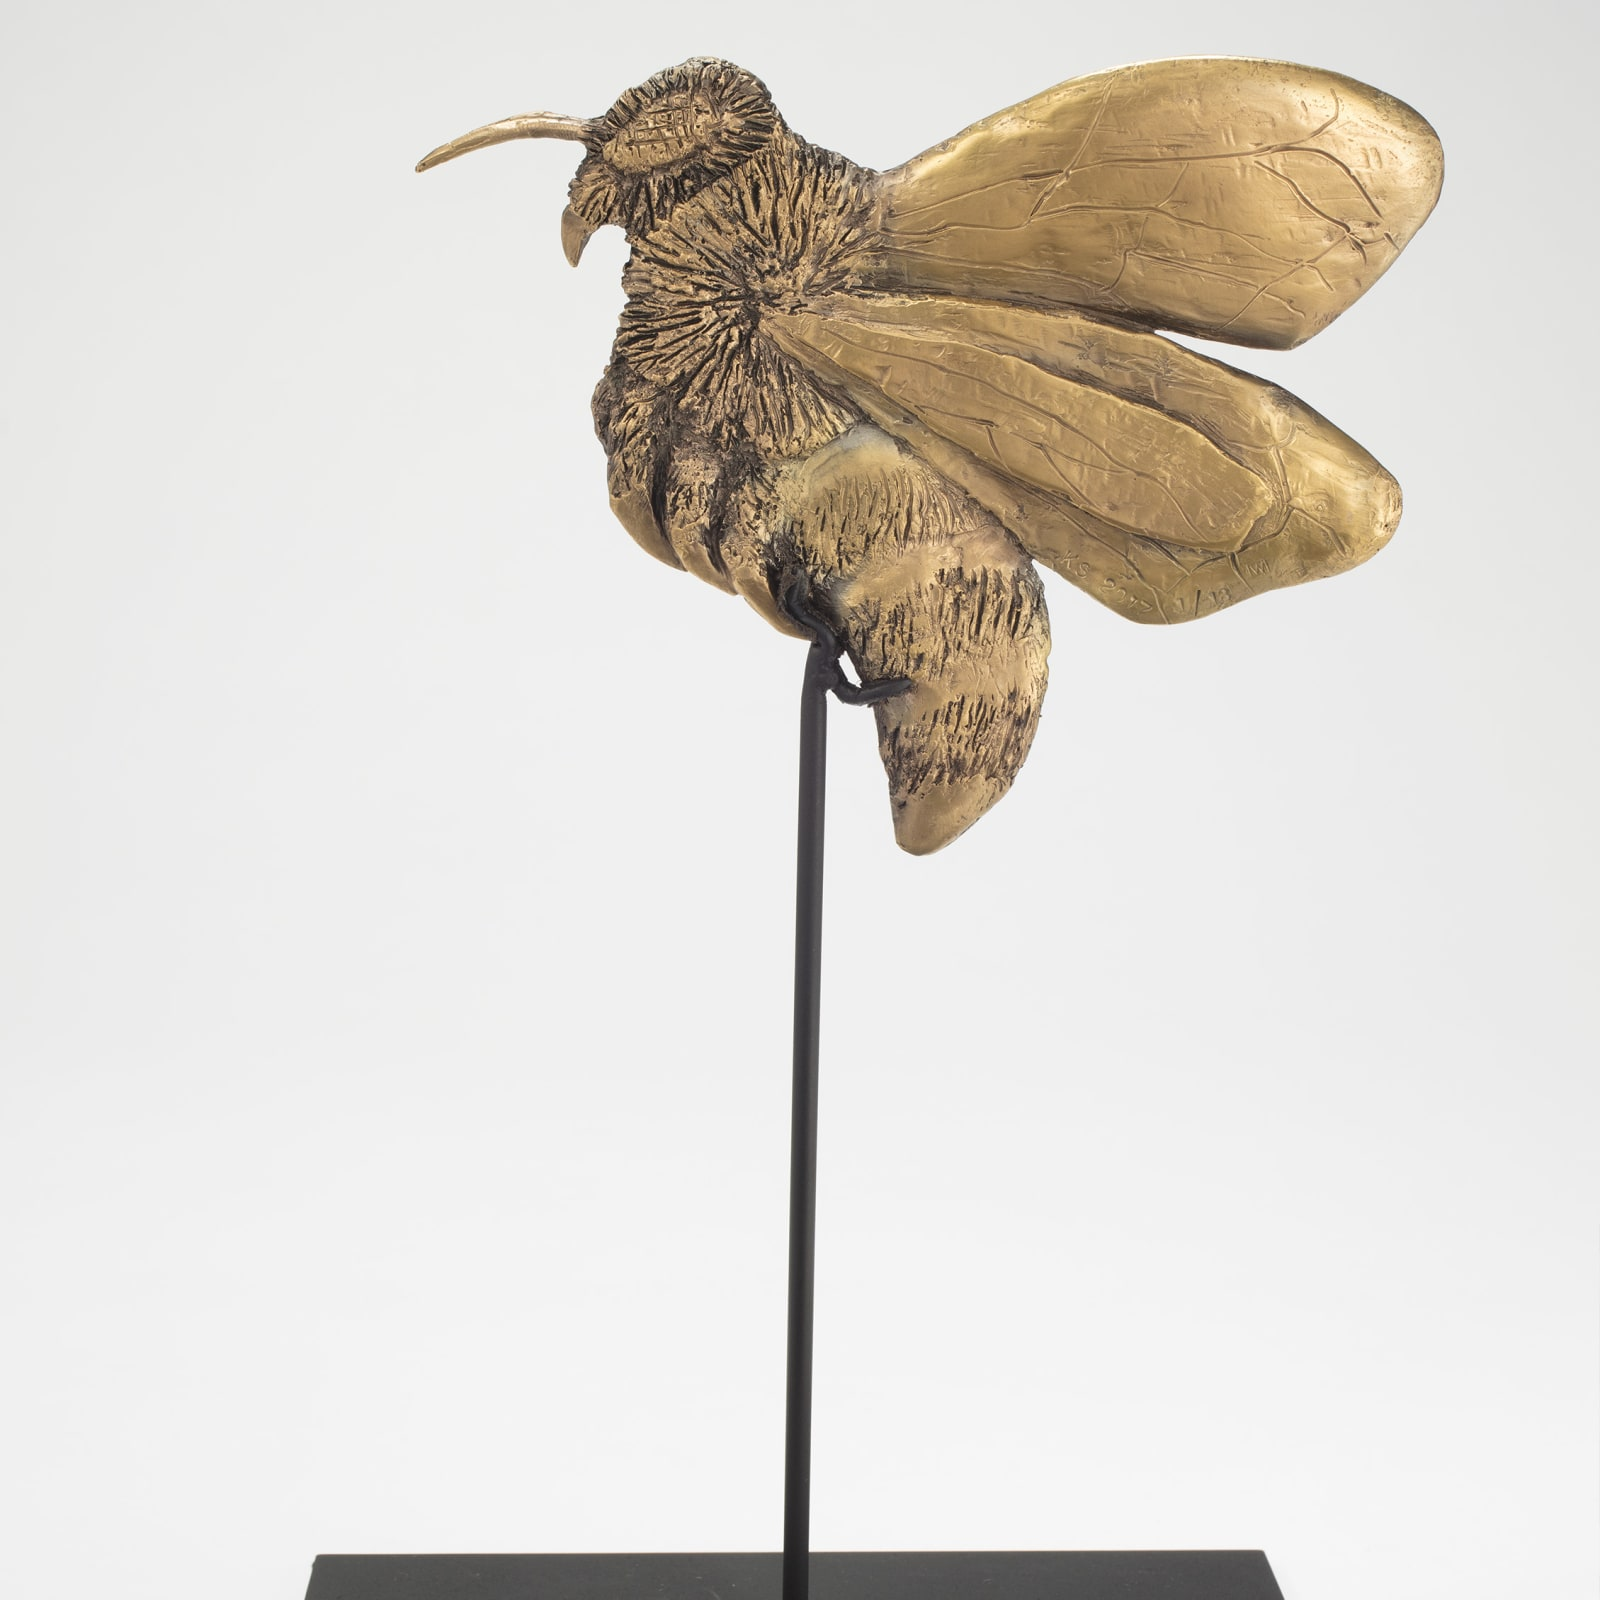 Kiki Smith  Forager A, 2017  Gold Plated Bronze  29.2 x 19.3 x 10 cm  Edition 3  Edition of 13 + 1 AP